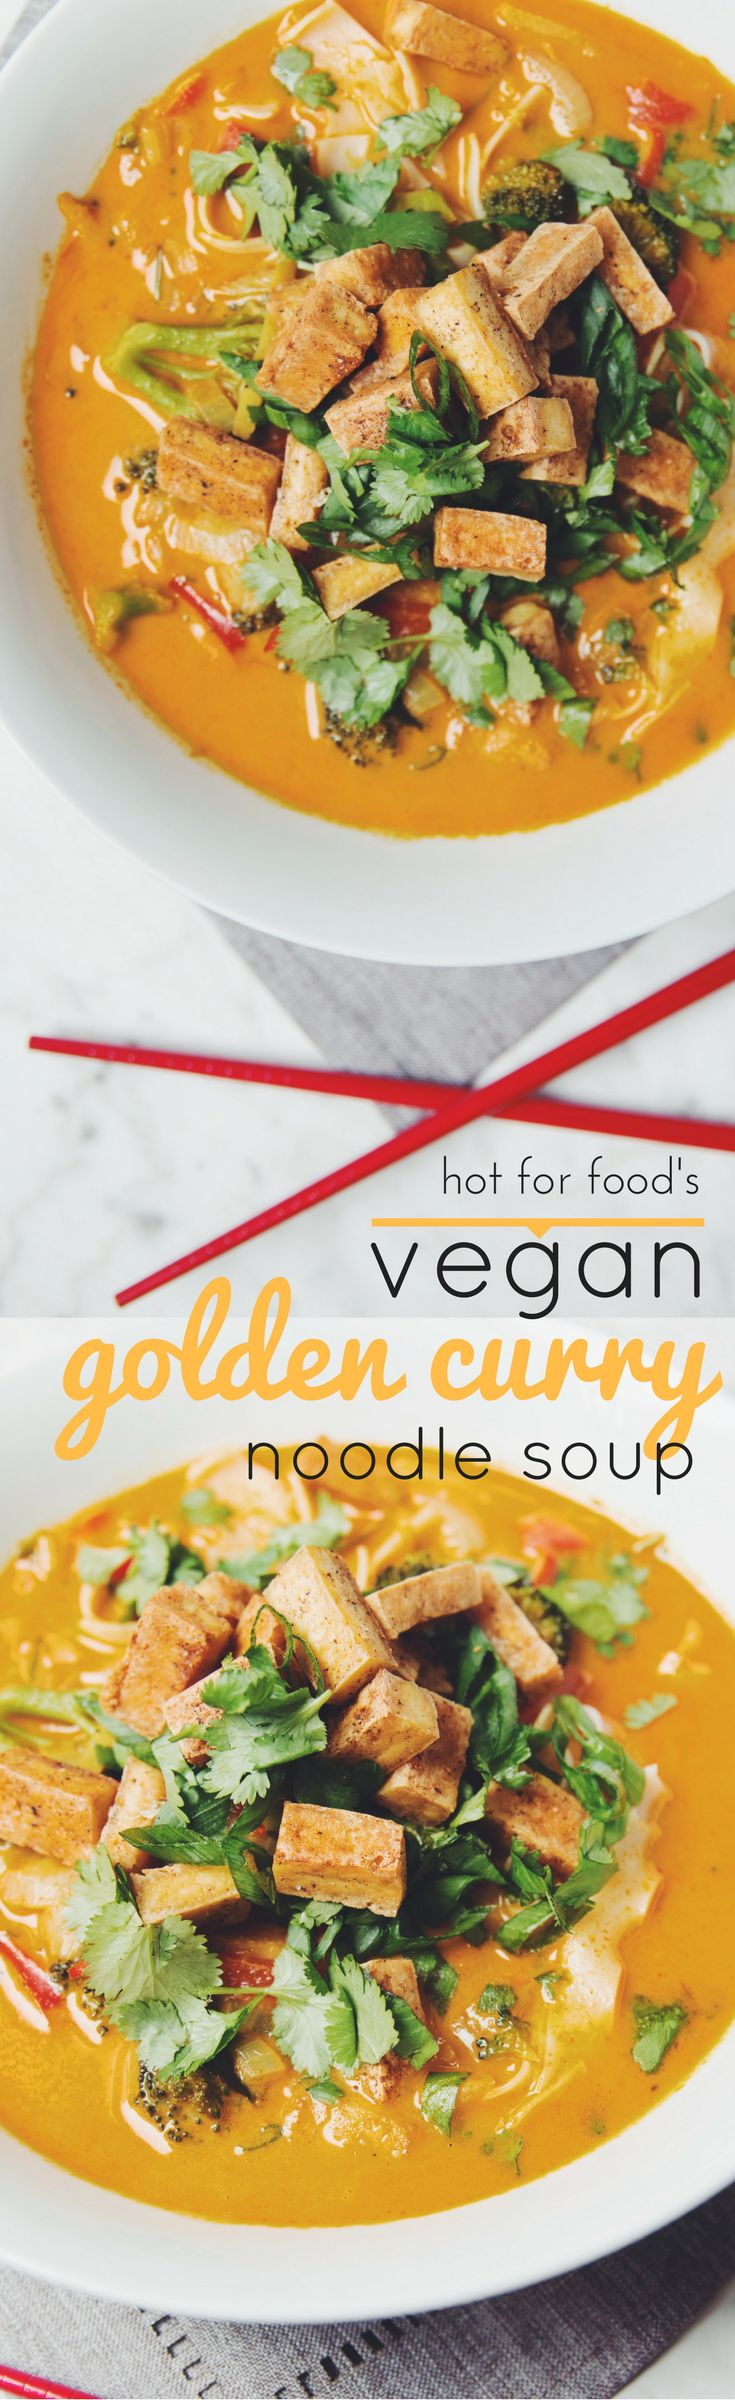 vegan golden curry noodle soup | RECIPE by hot for food